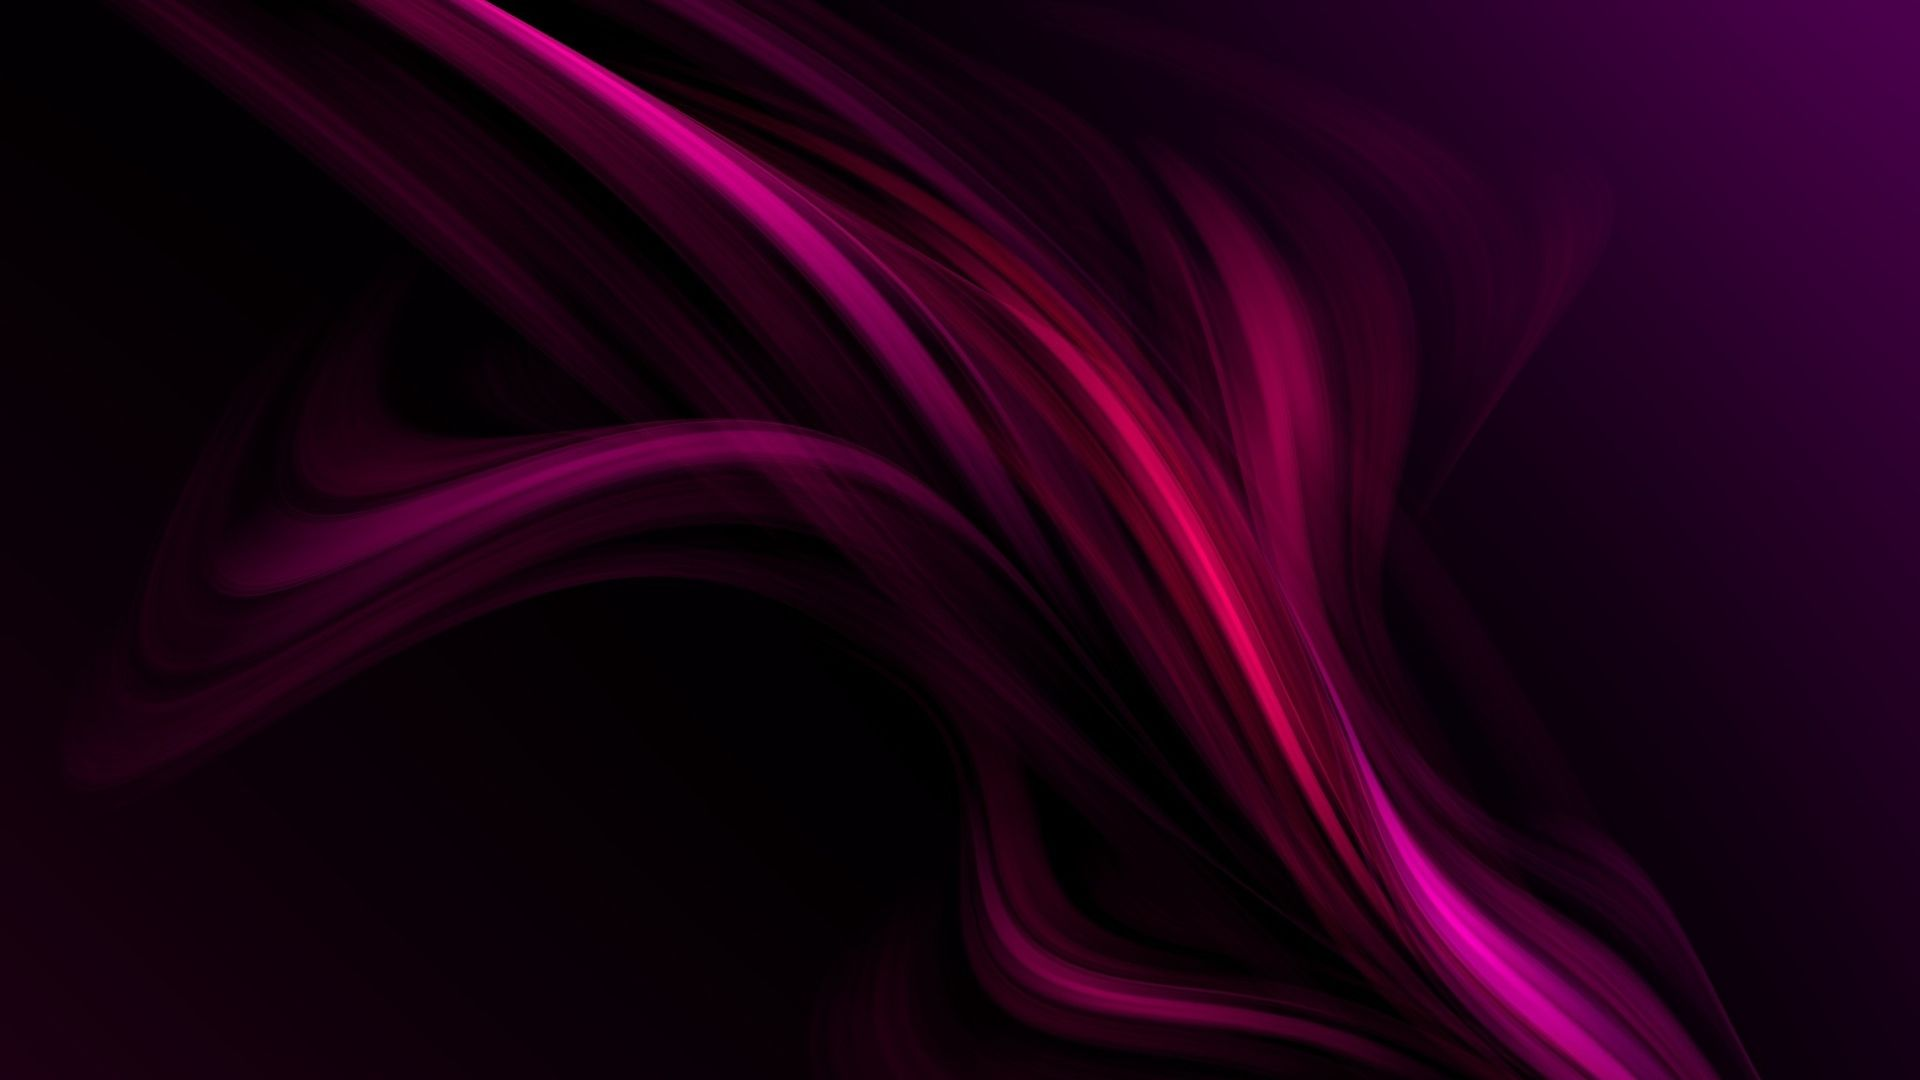 Dark Color HD Desktop Wallpaper